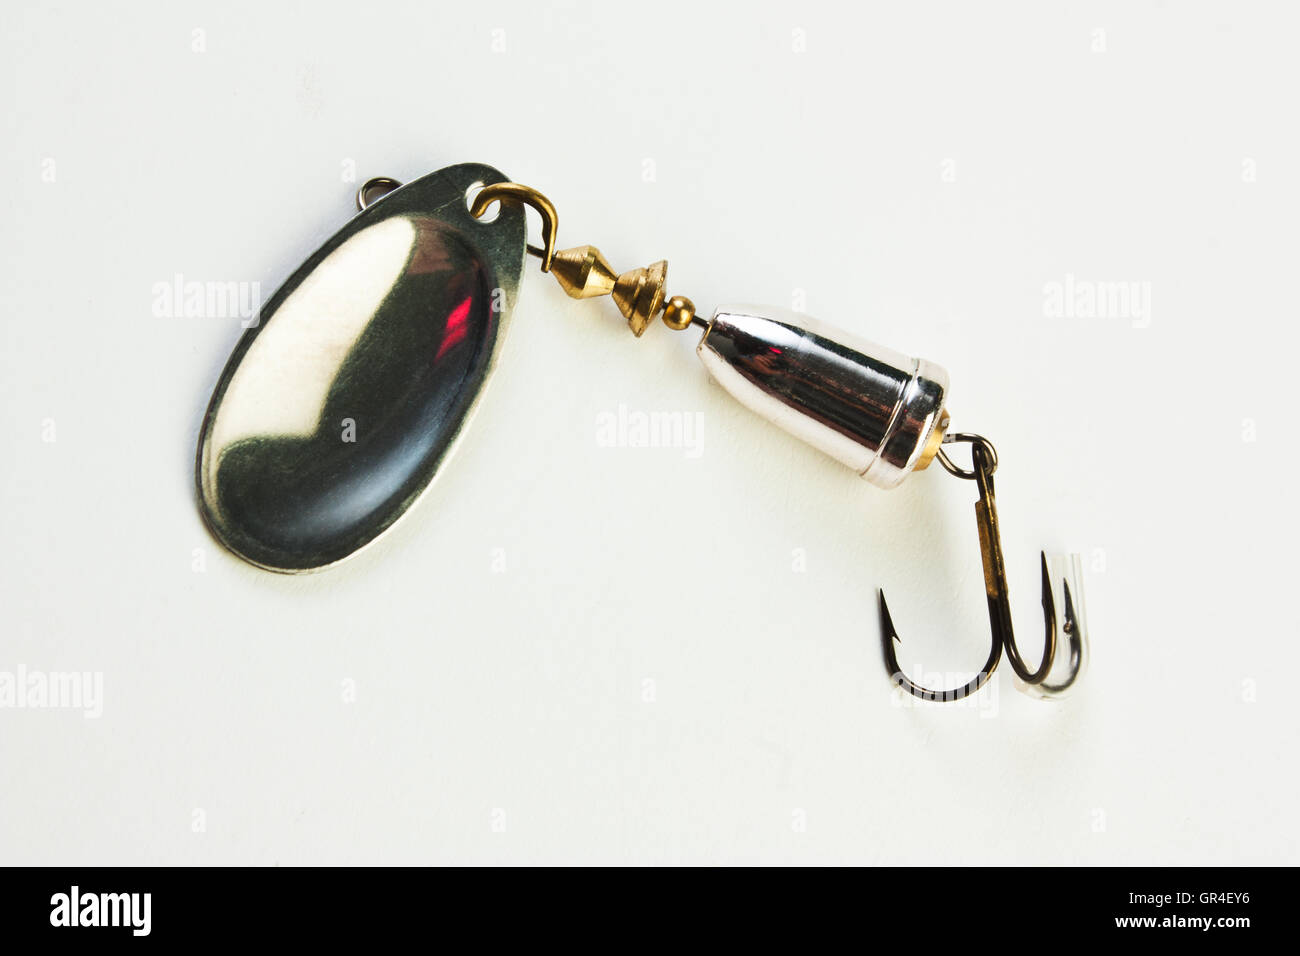 Fishing Tackle - Stock Image